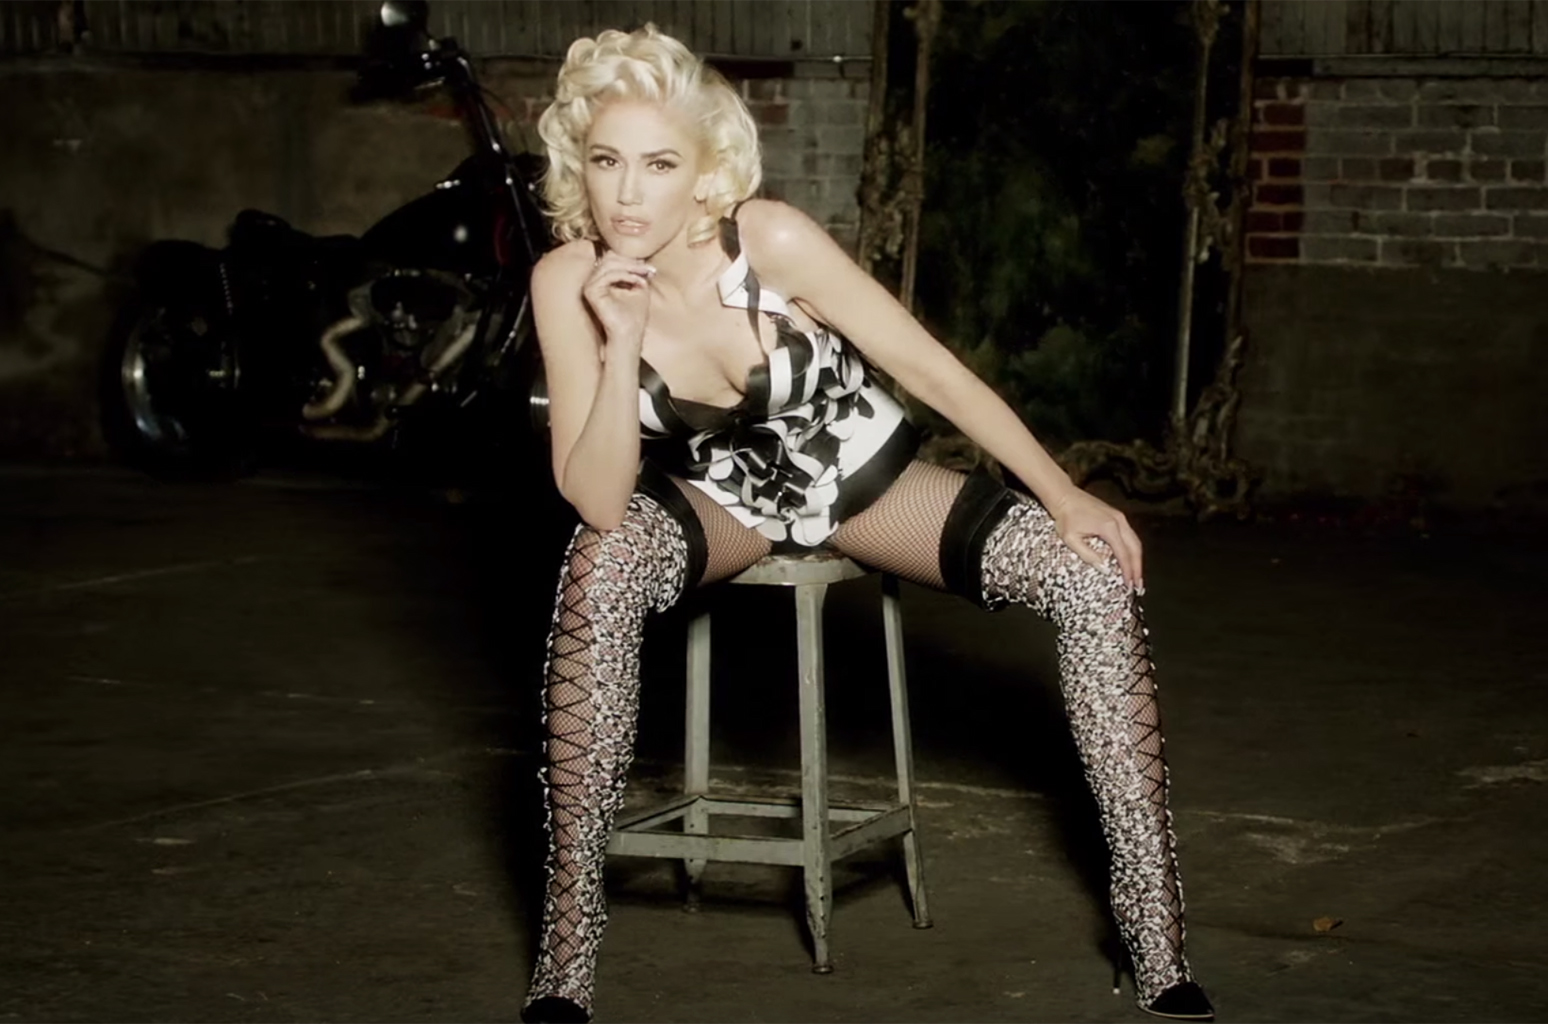 Gwen stefani hot photo gallery